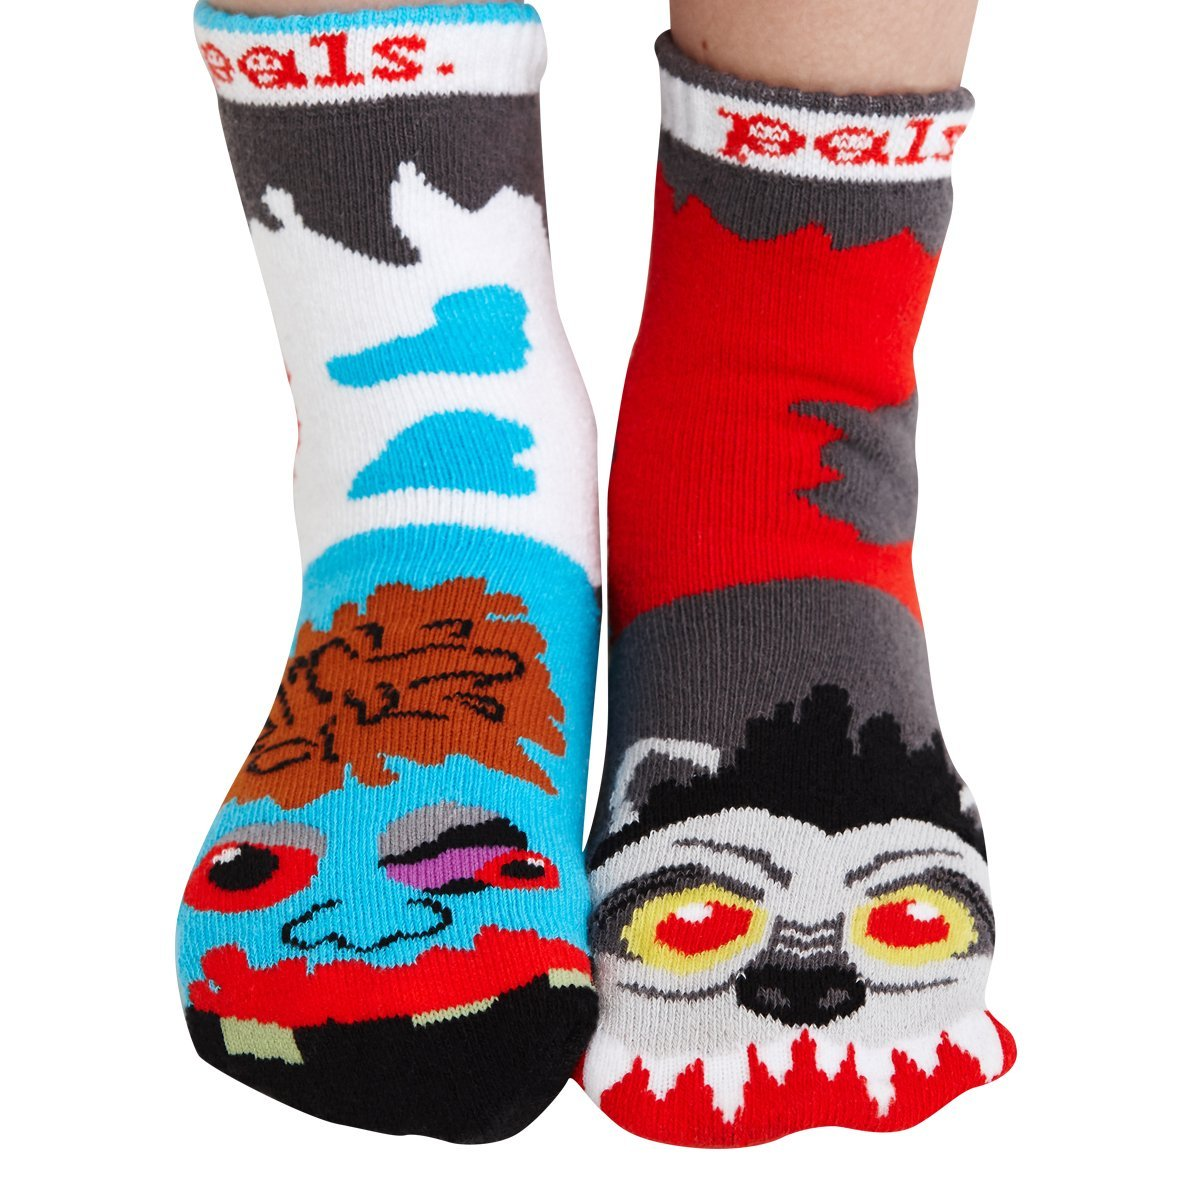 Kids Werewolf & Zombie Socks - Mismatched Unlikely Friends! PS-9